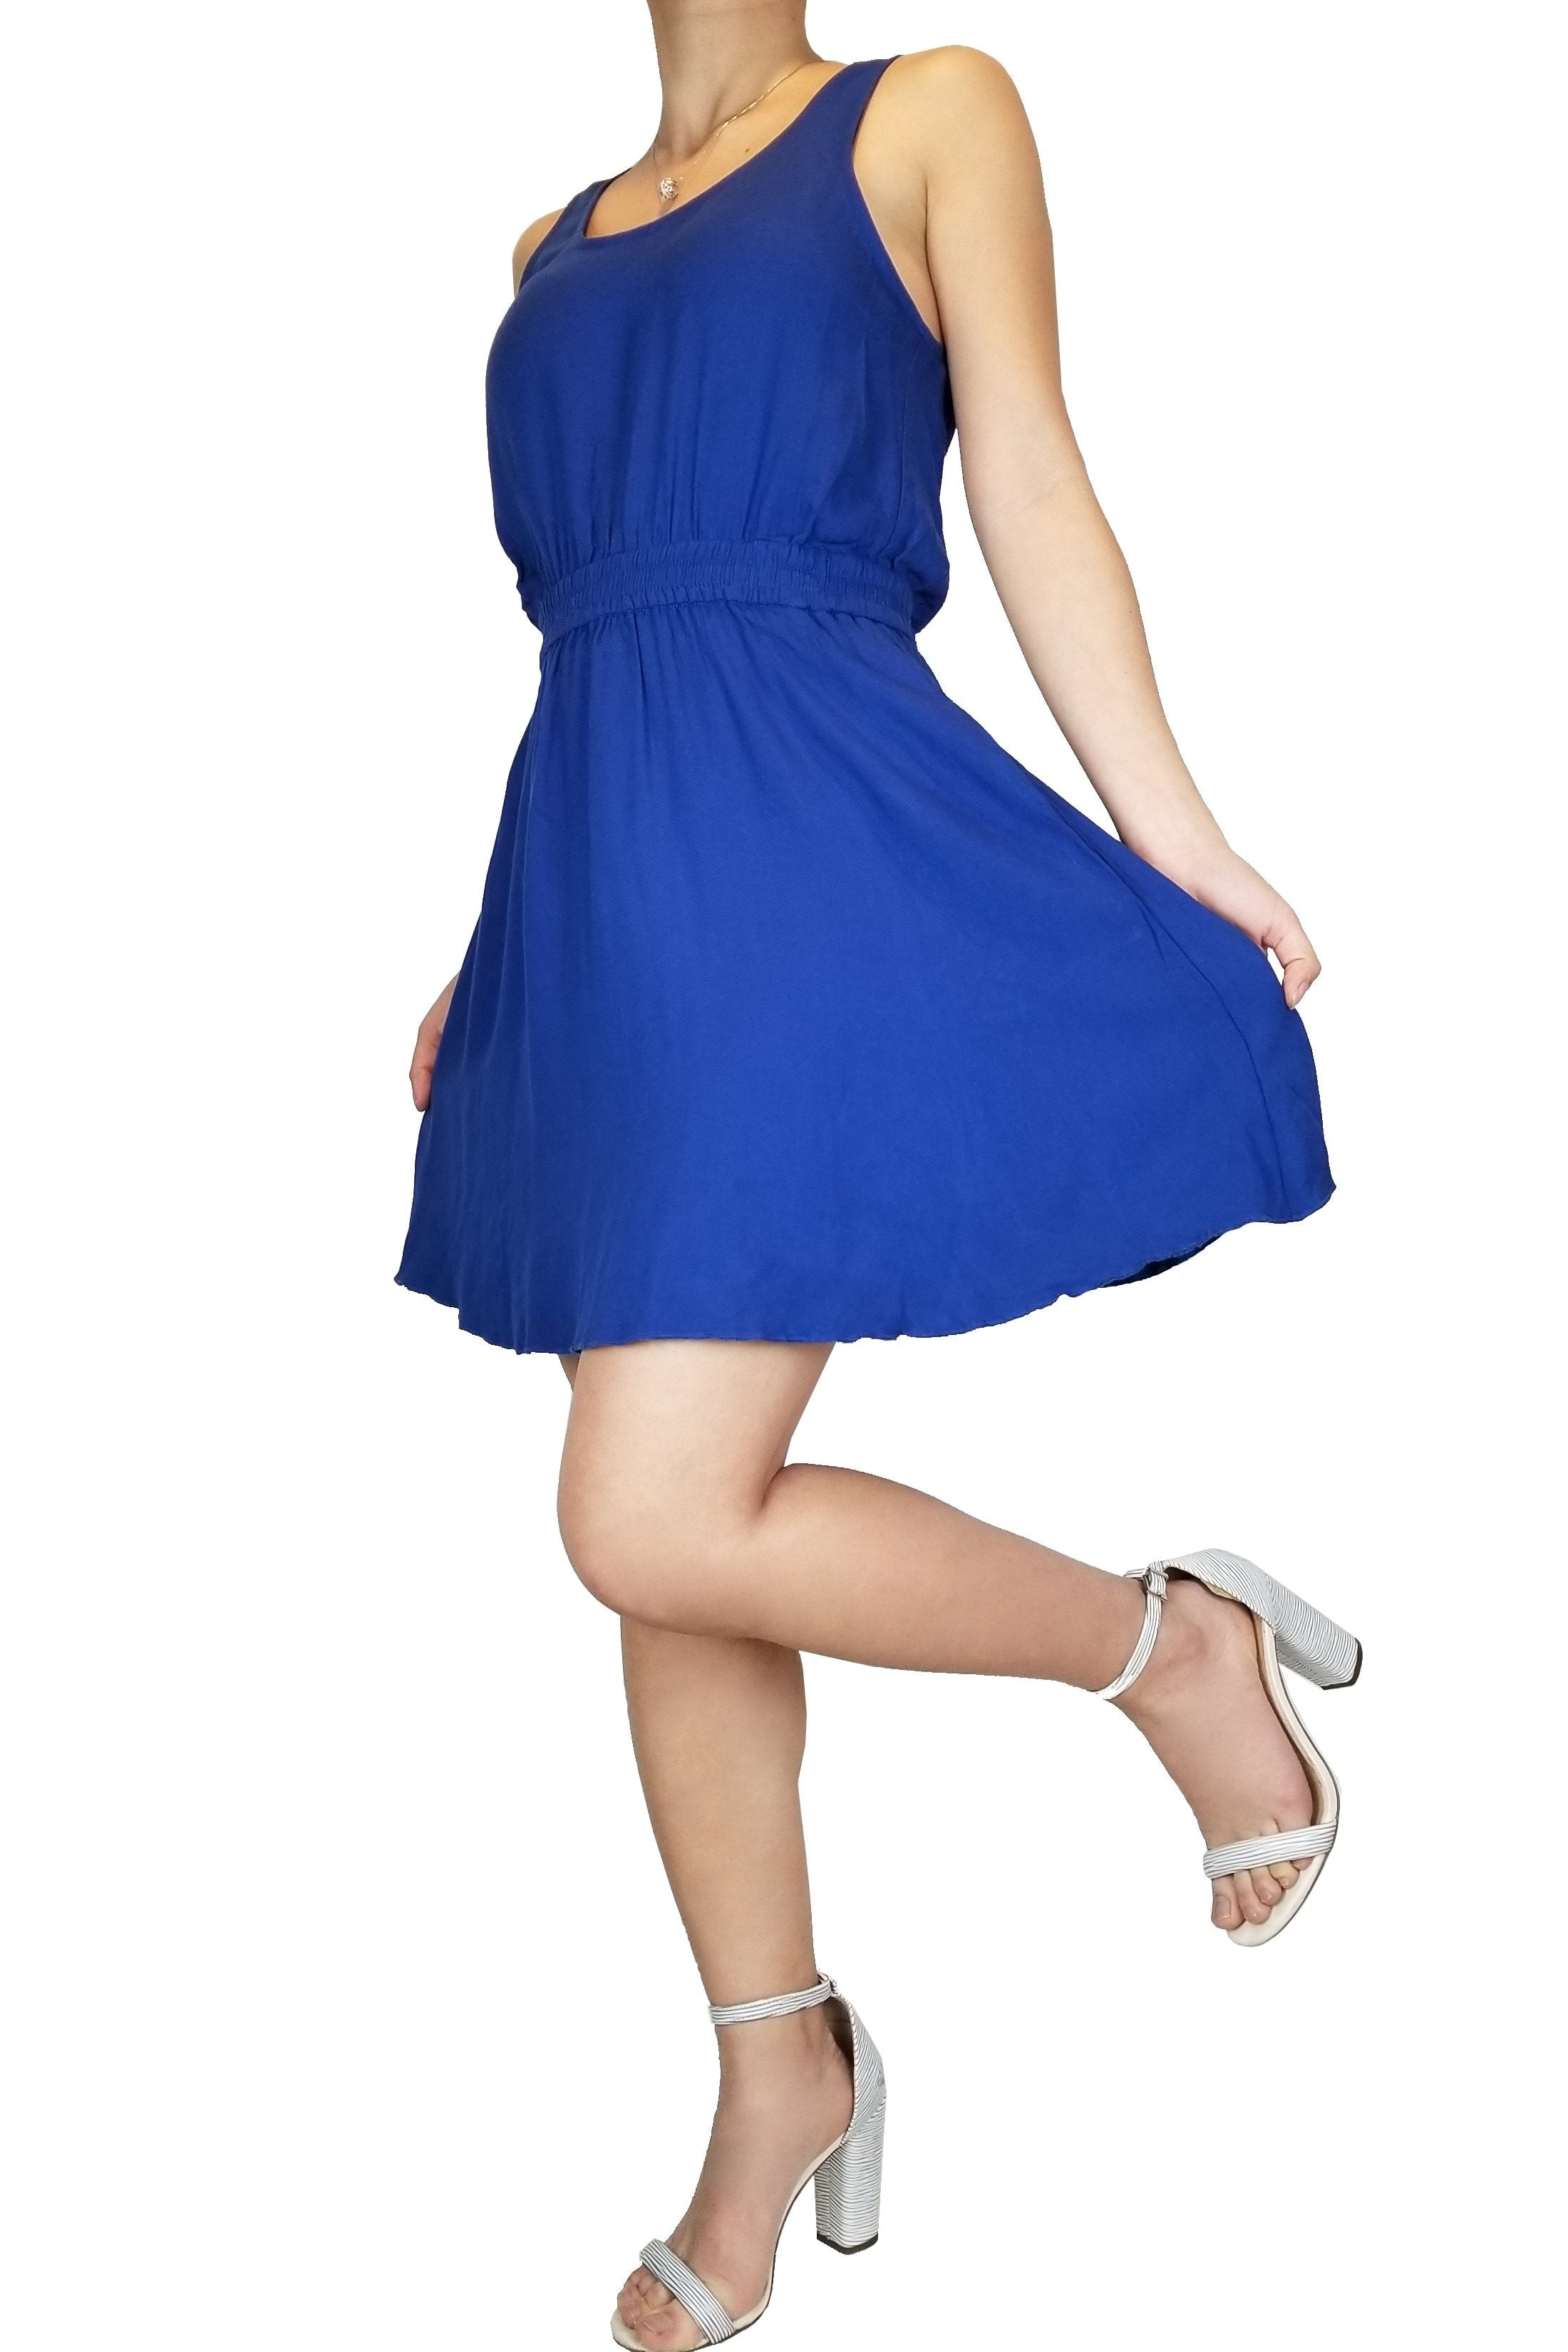 Talula Cute Blue Scoop Neck Dress, Vibrant blue dress for all occasions. The perfect summer dress!, Blue, 100% Rayon, Dress, cute sapphire dress, scoop neck dress, summer comfy dress, party blue dress